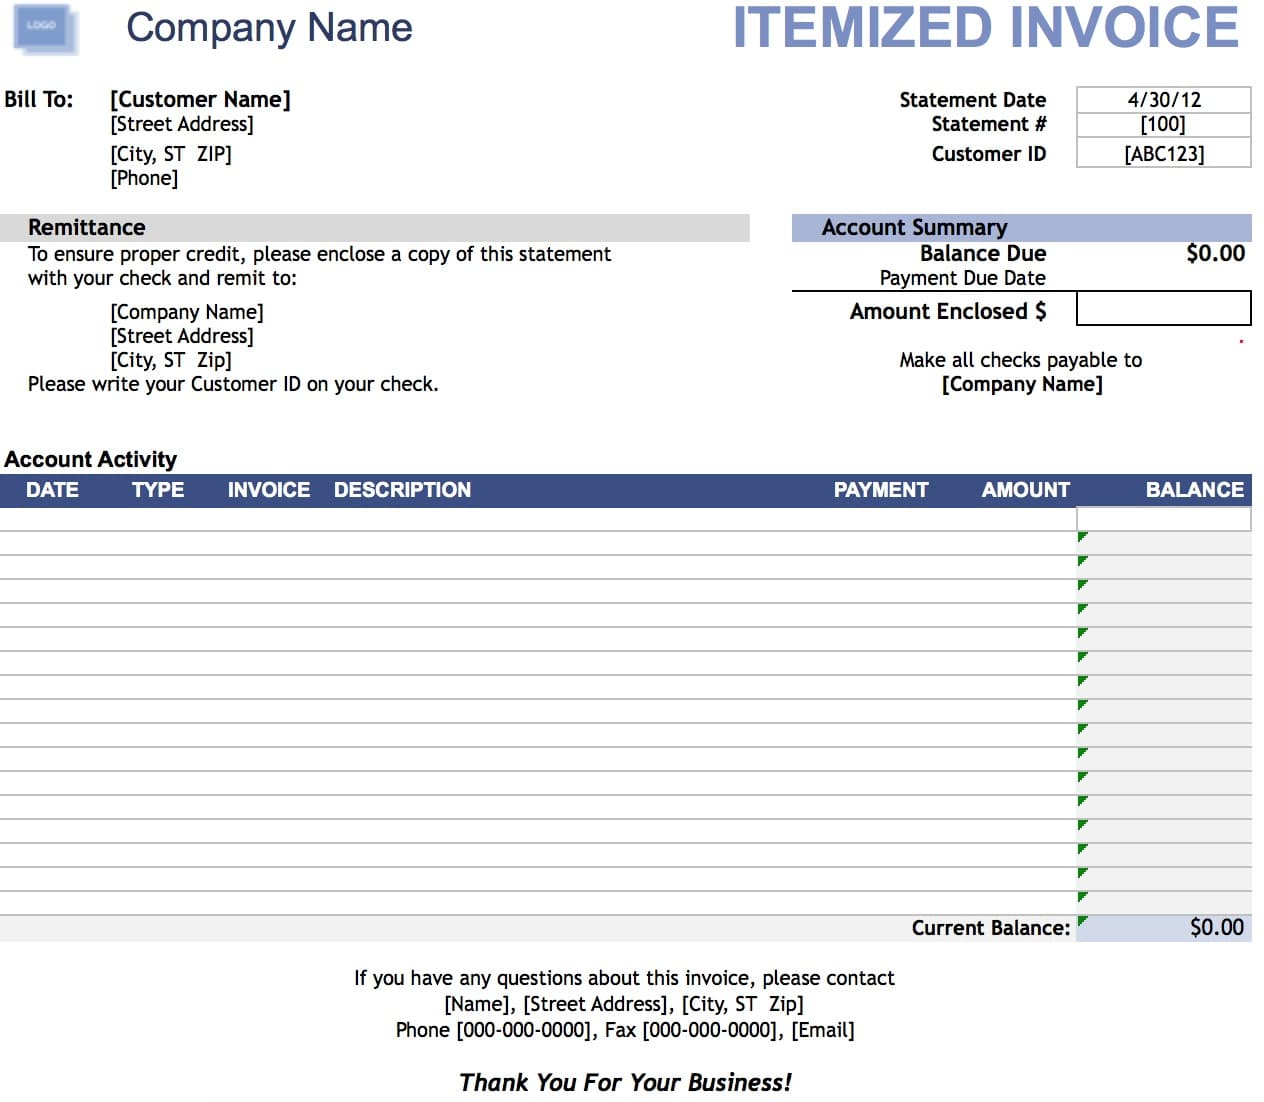 blank invoice templates in pdf word excel itemized itemized middot landscaping